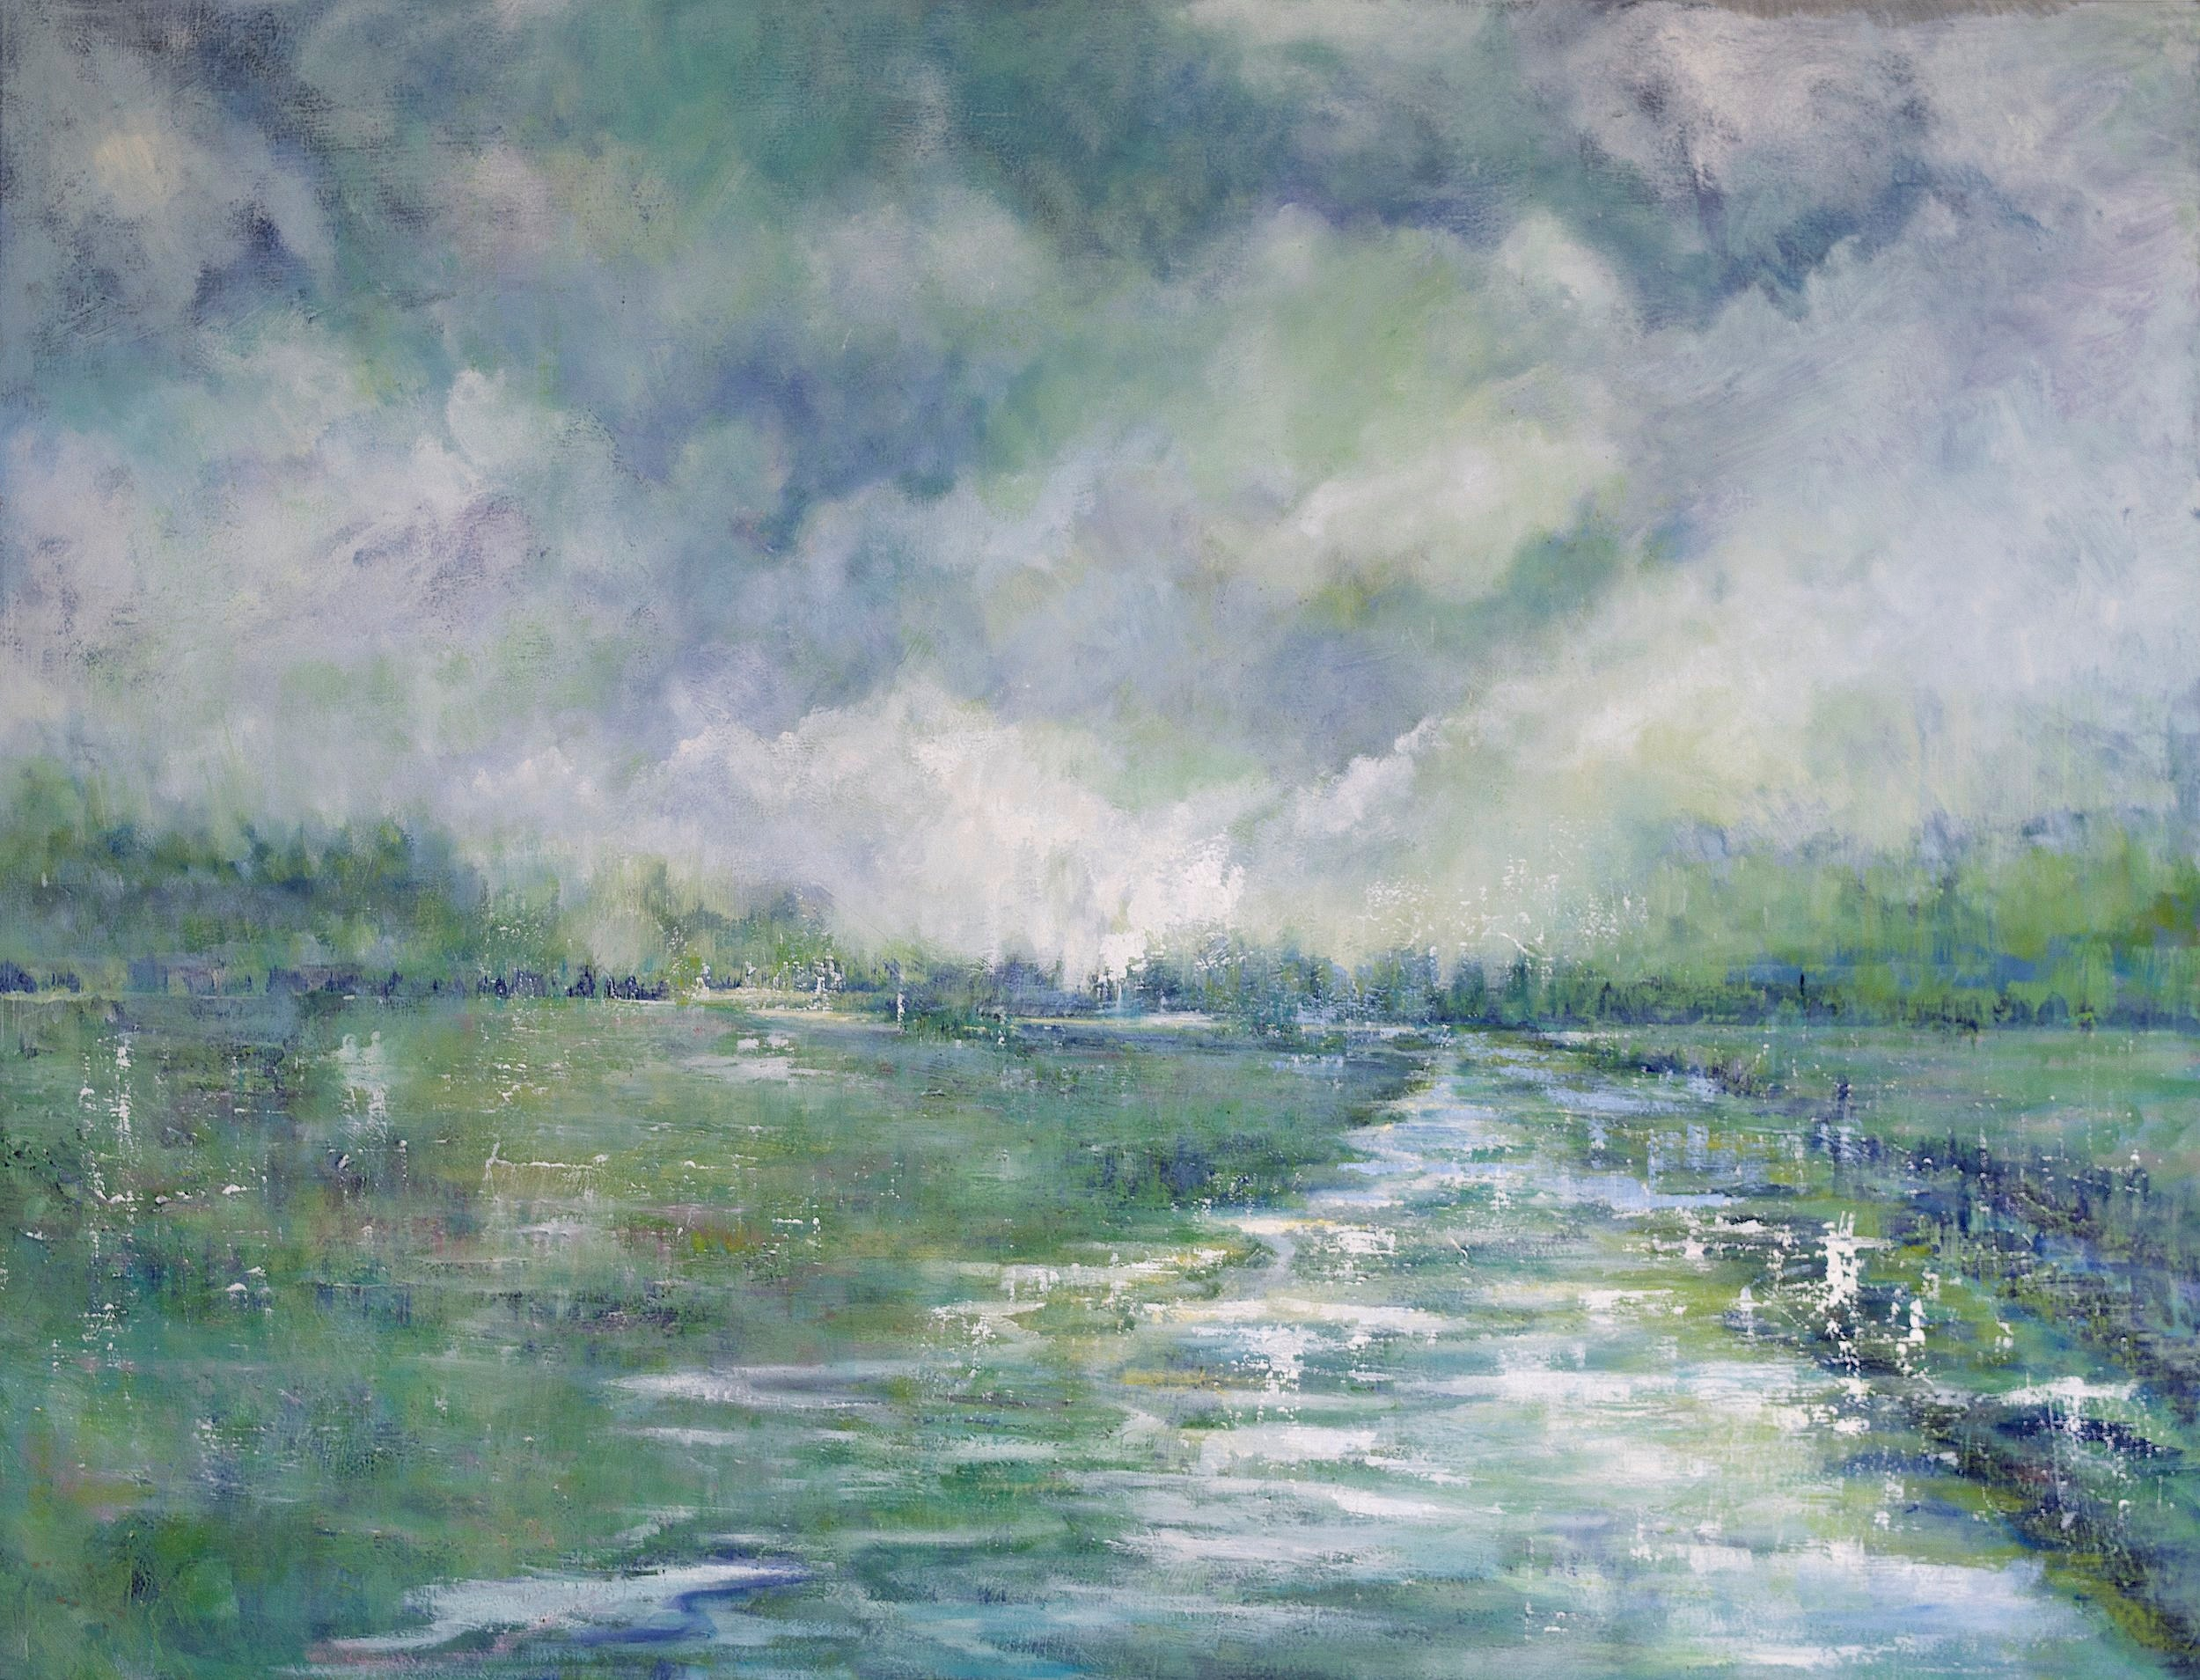 Meadow in flood - 130cm x 100cm, Oil on Box CanvasSOLD